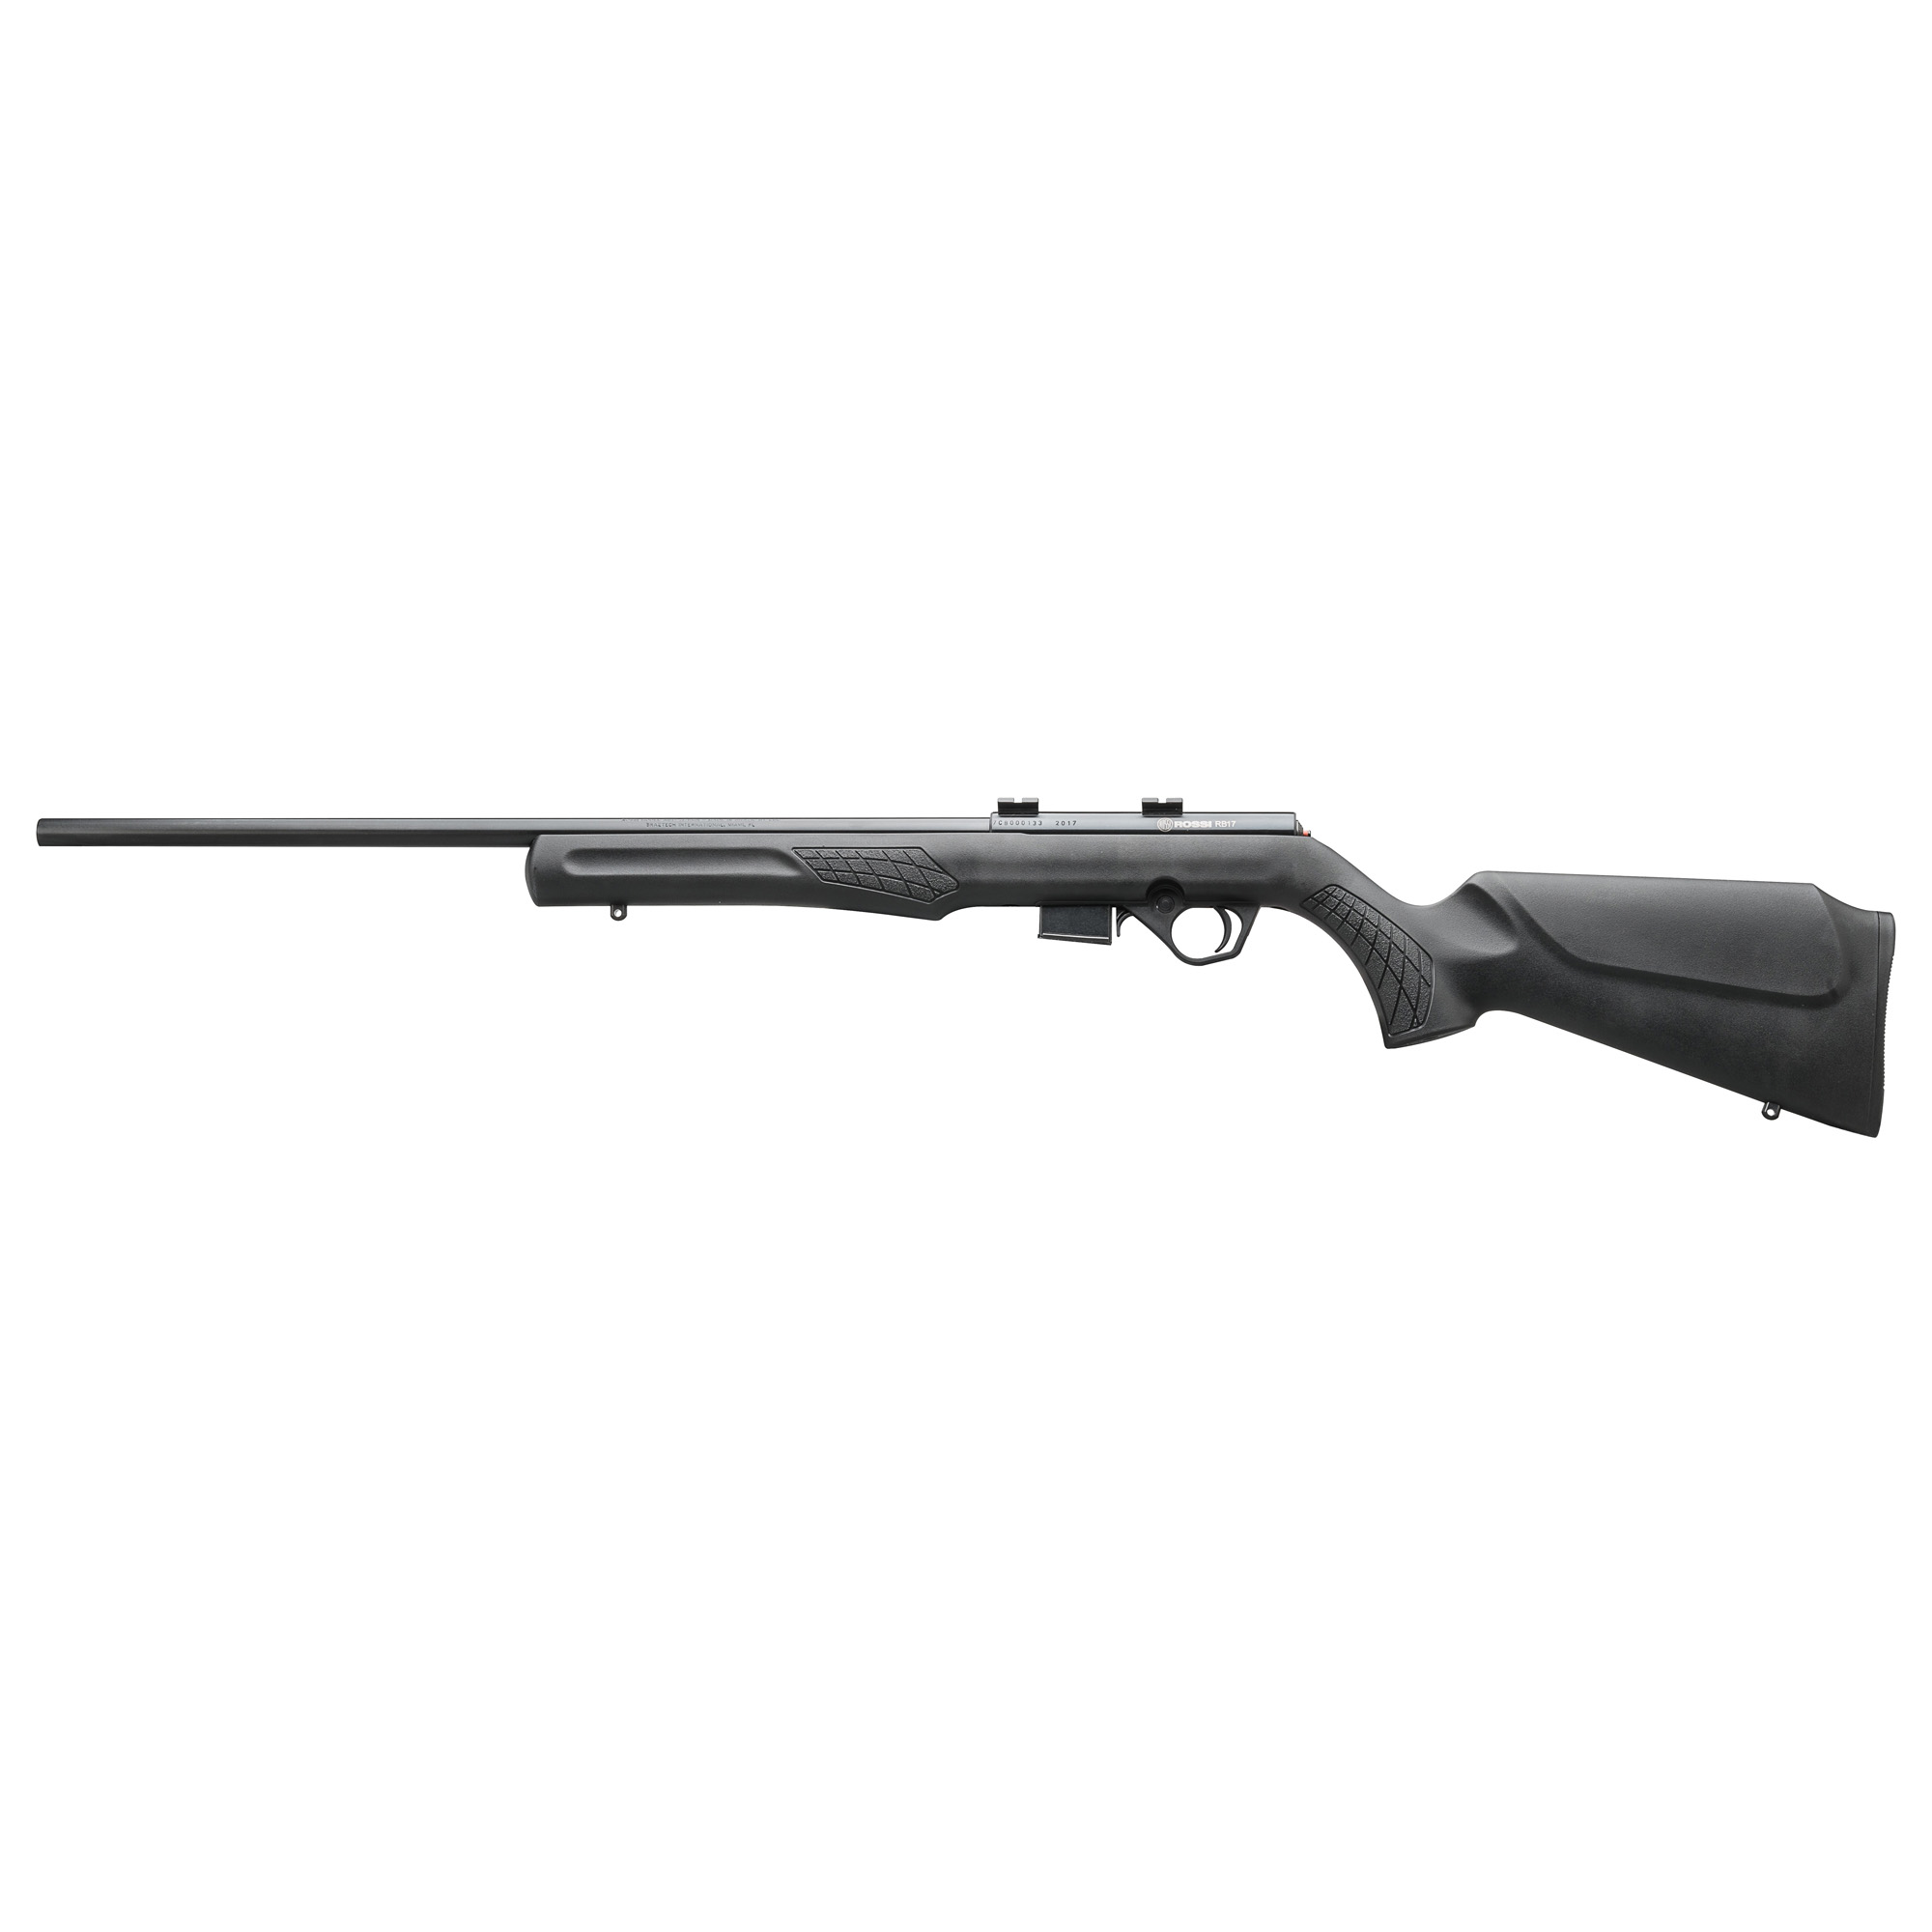 """The Rossi(R) RB17 is a reliable and accurate bolt action rimfire rifle. The textured synthetic Monte Carlo stock is perfectly mated to a 21"""" free-float barrel for outstanding balance and feel. Offered in .17 HMR the RB17 features Weaver(R) style scope mounts and a 5 round detachable magazine."""